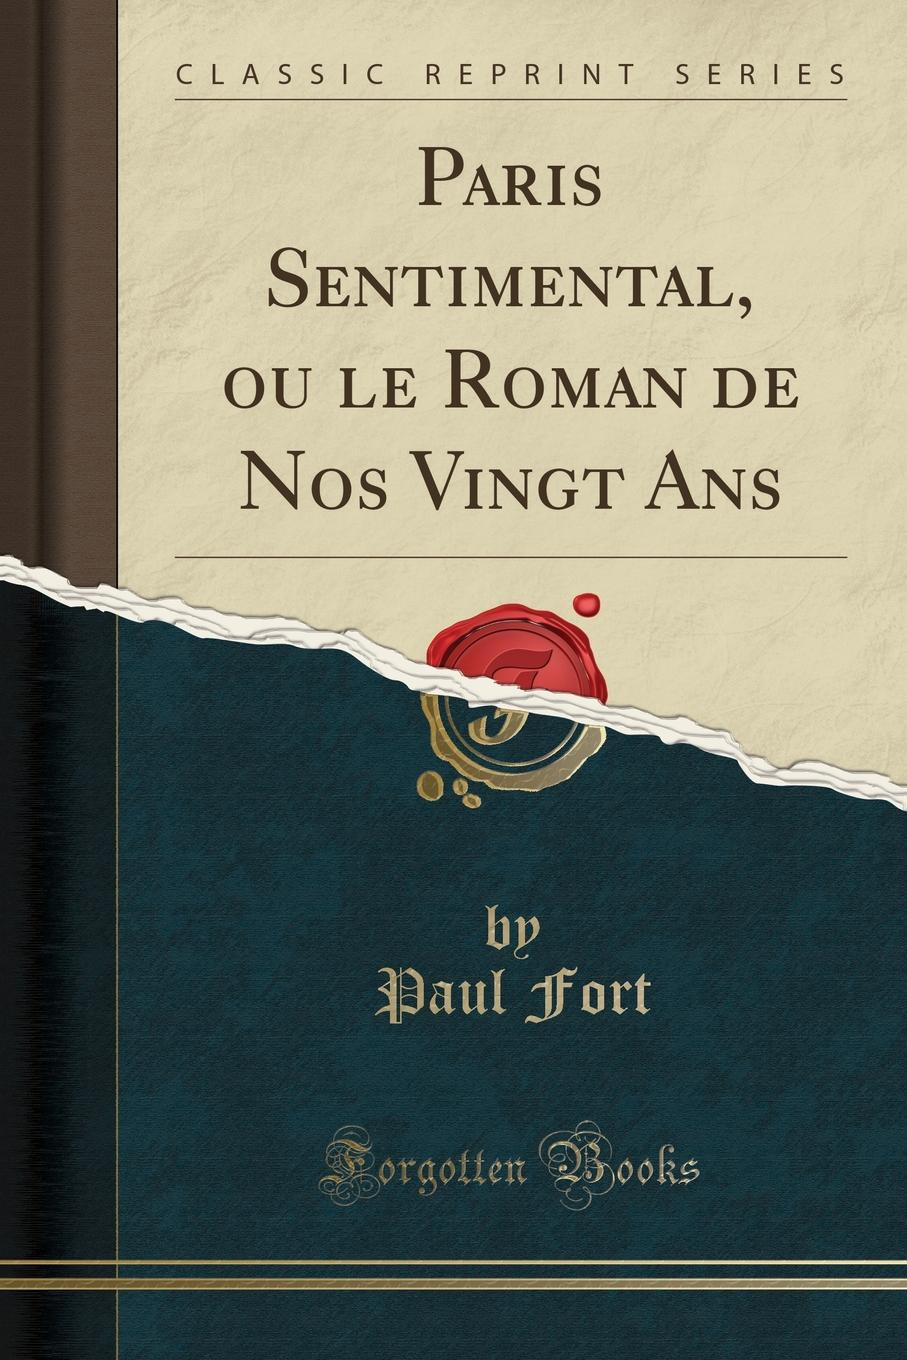 Paul Fort Paris Sentimental, ou le Roman de Nos Vingt Ans (Classic Reprint) the rose the history of the world's favourite flower in 40 captivating roses with classic texts and rare beautiful prints